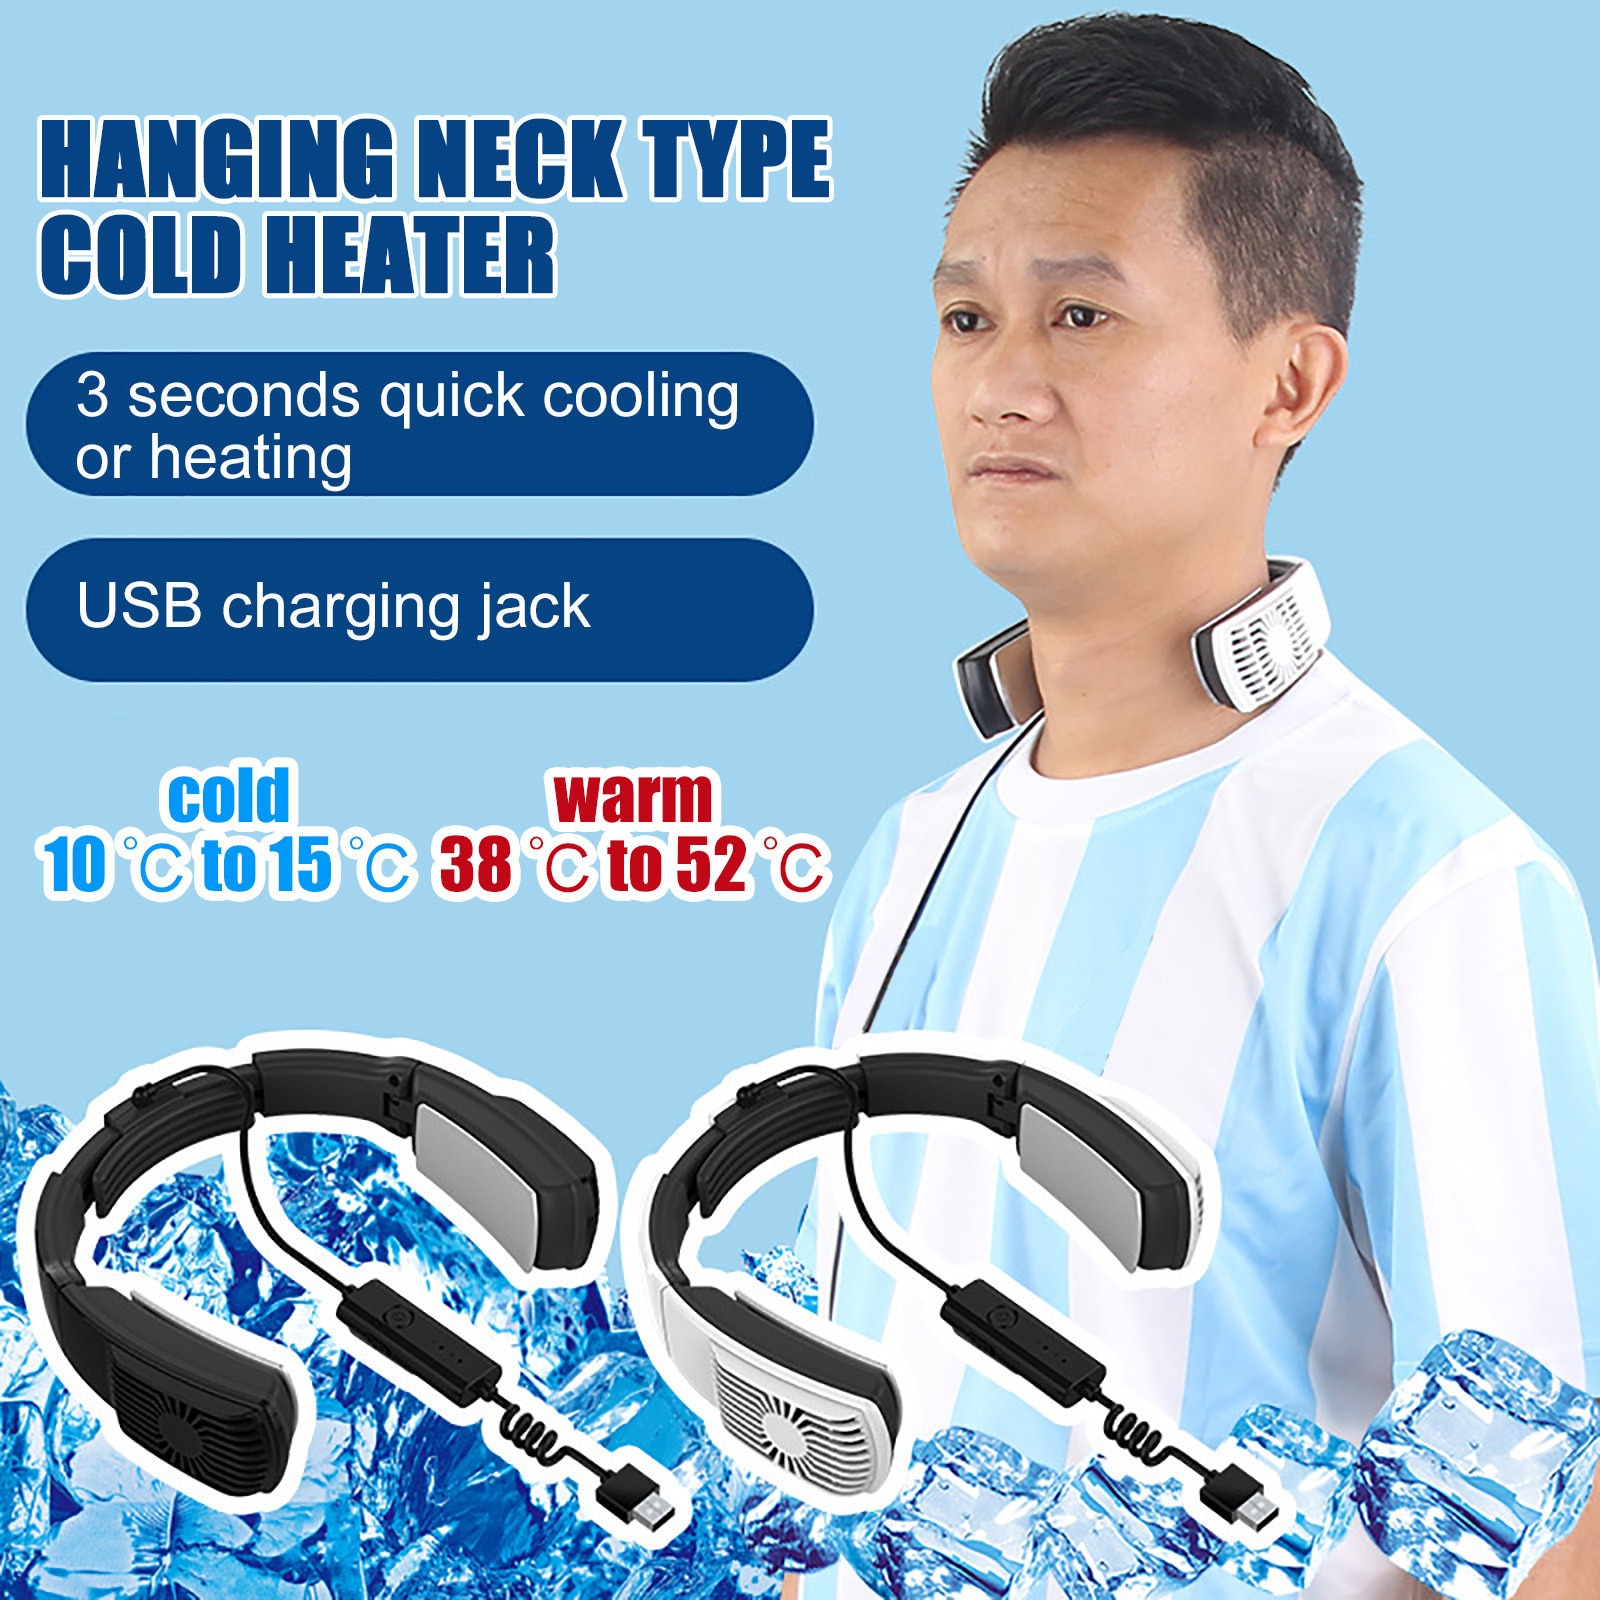 chet atkins and mark knopfler neck and neck Portable heating and cooling air conditioning wearable neck protector air conditioning neck-mounted scarf and air cooler and